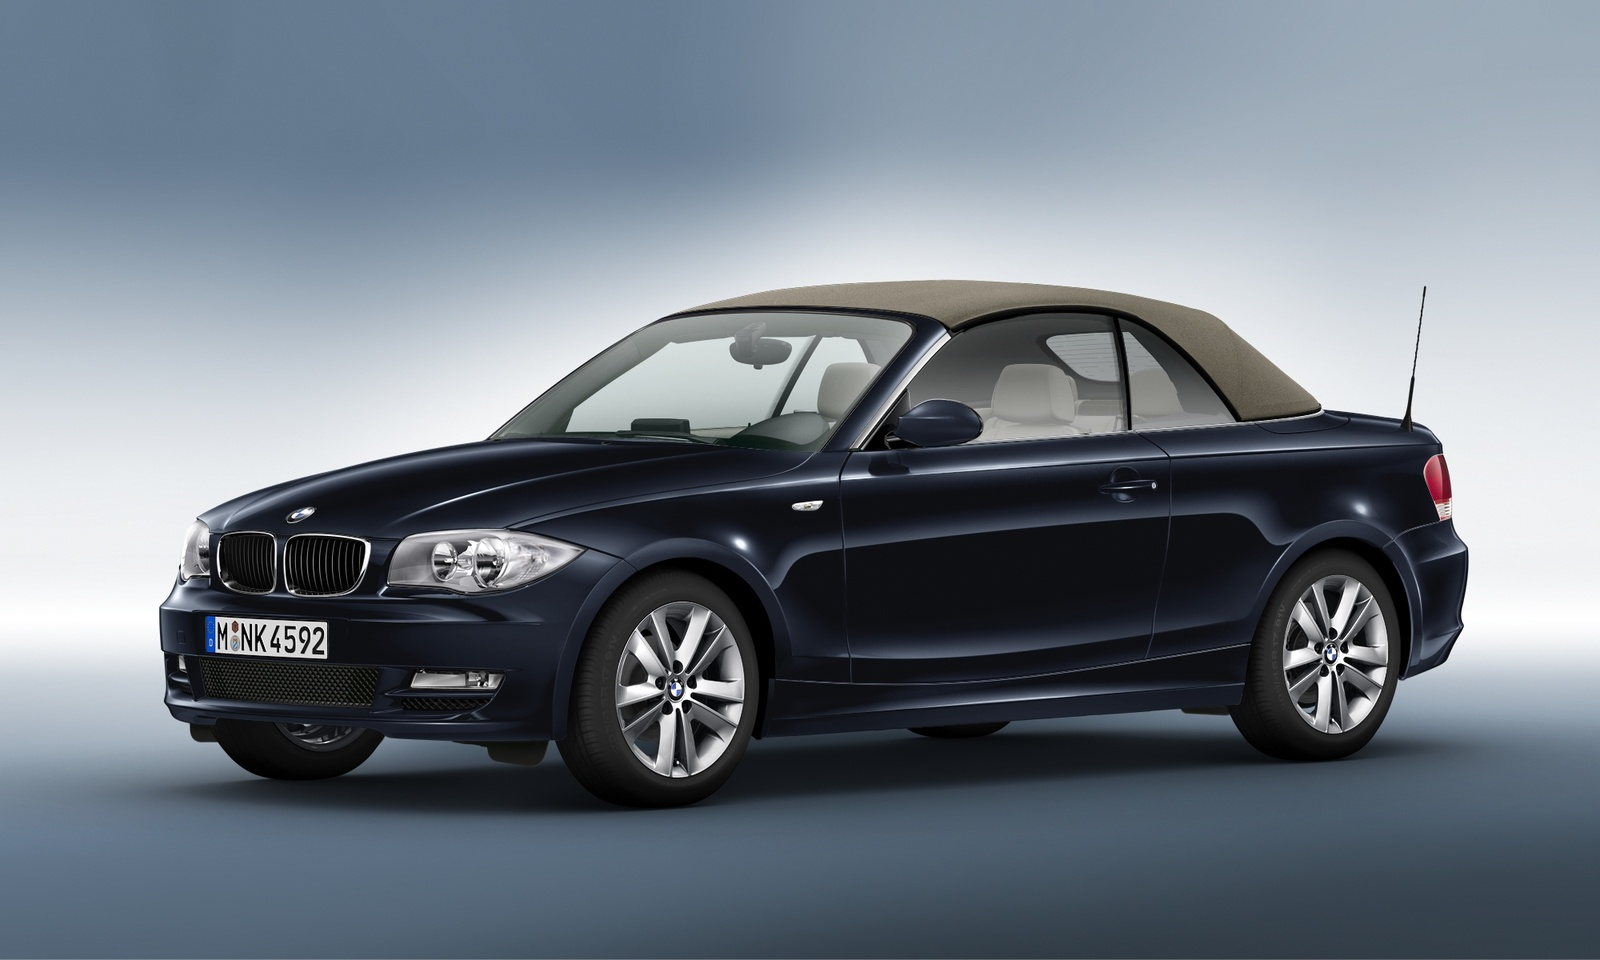 2008 bmw 1 series exterior pictures cargurus. Black Bedroom Furniture Sets. Home Design Ideas